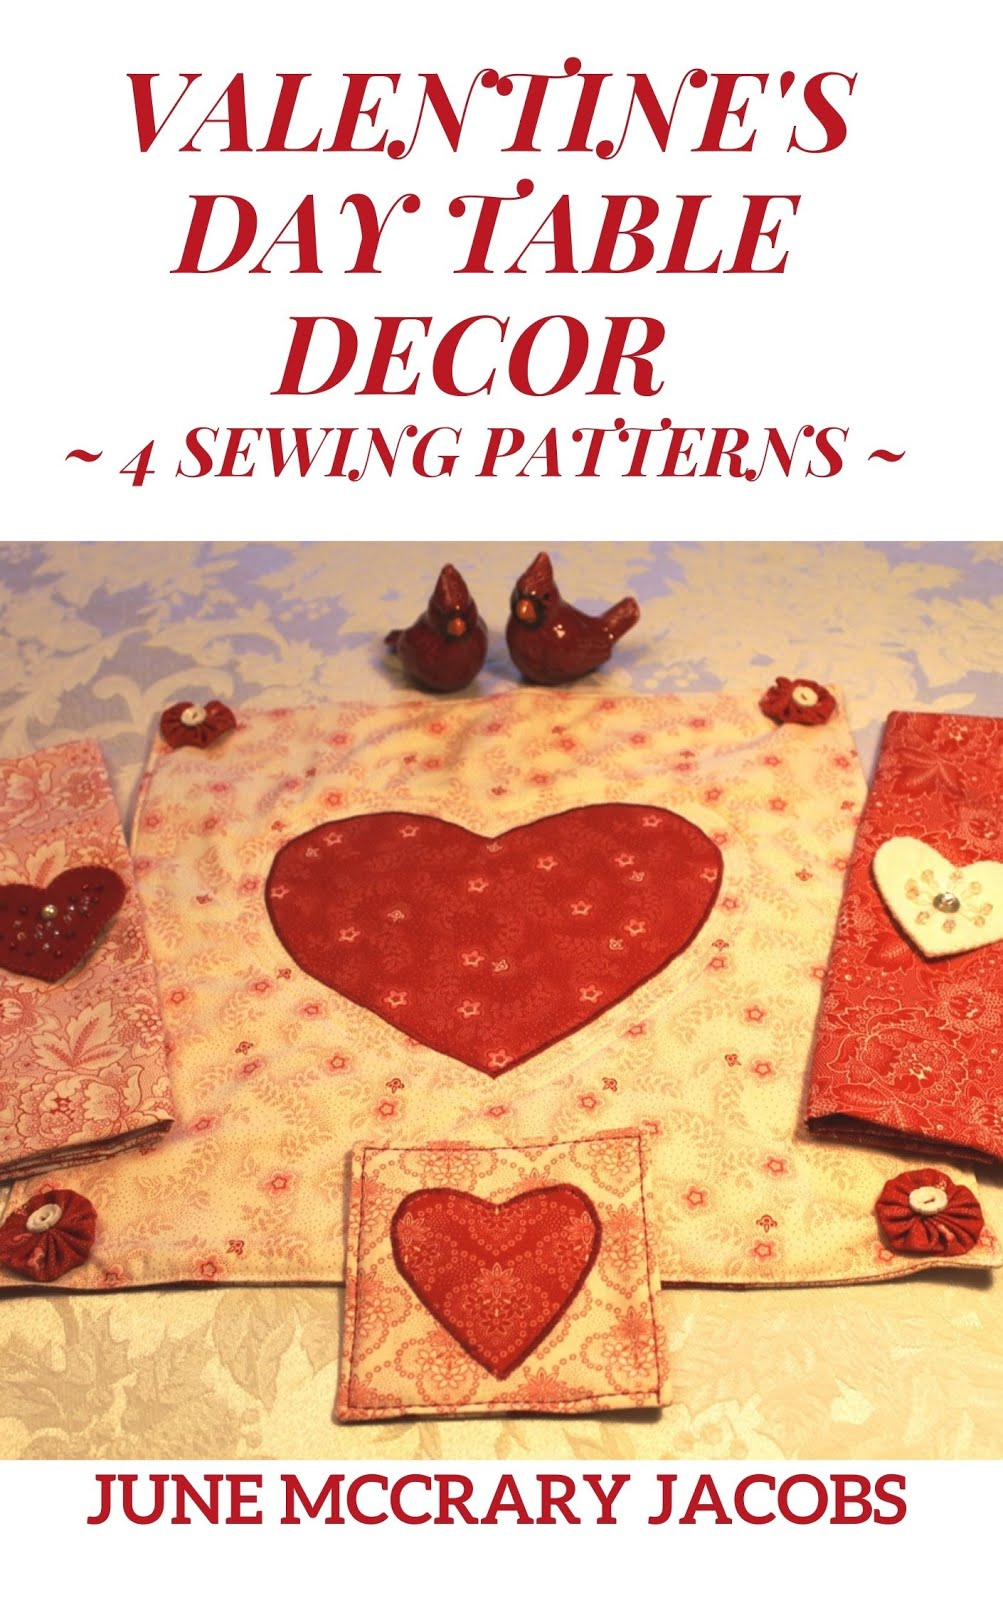 FIND 'VALENTINE'S DAY DECOR: 4 SEWING PATTERNS' ON AMAZON.